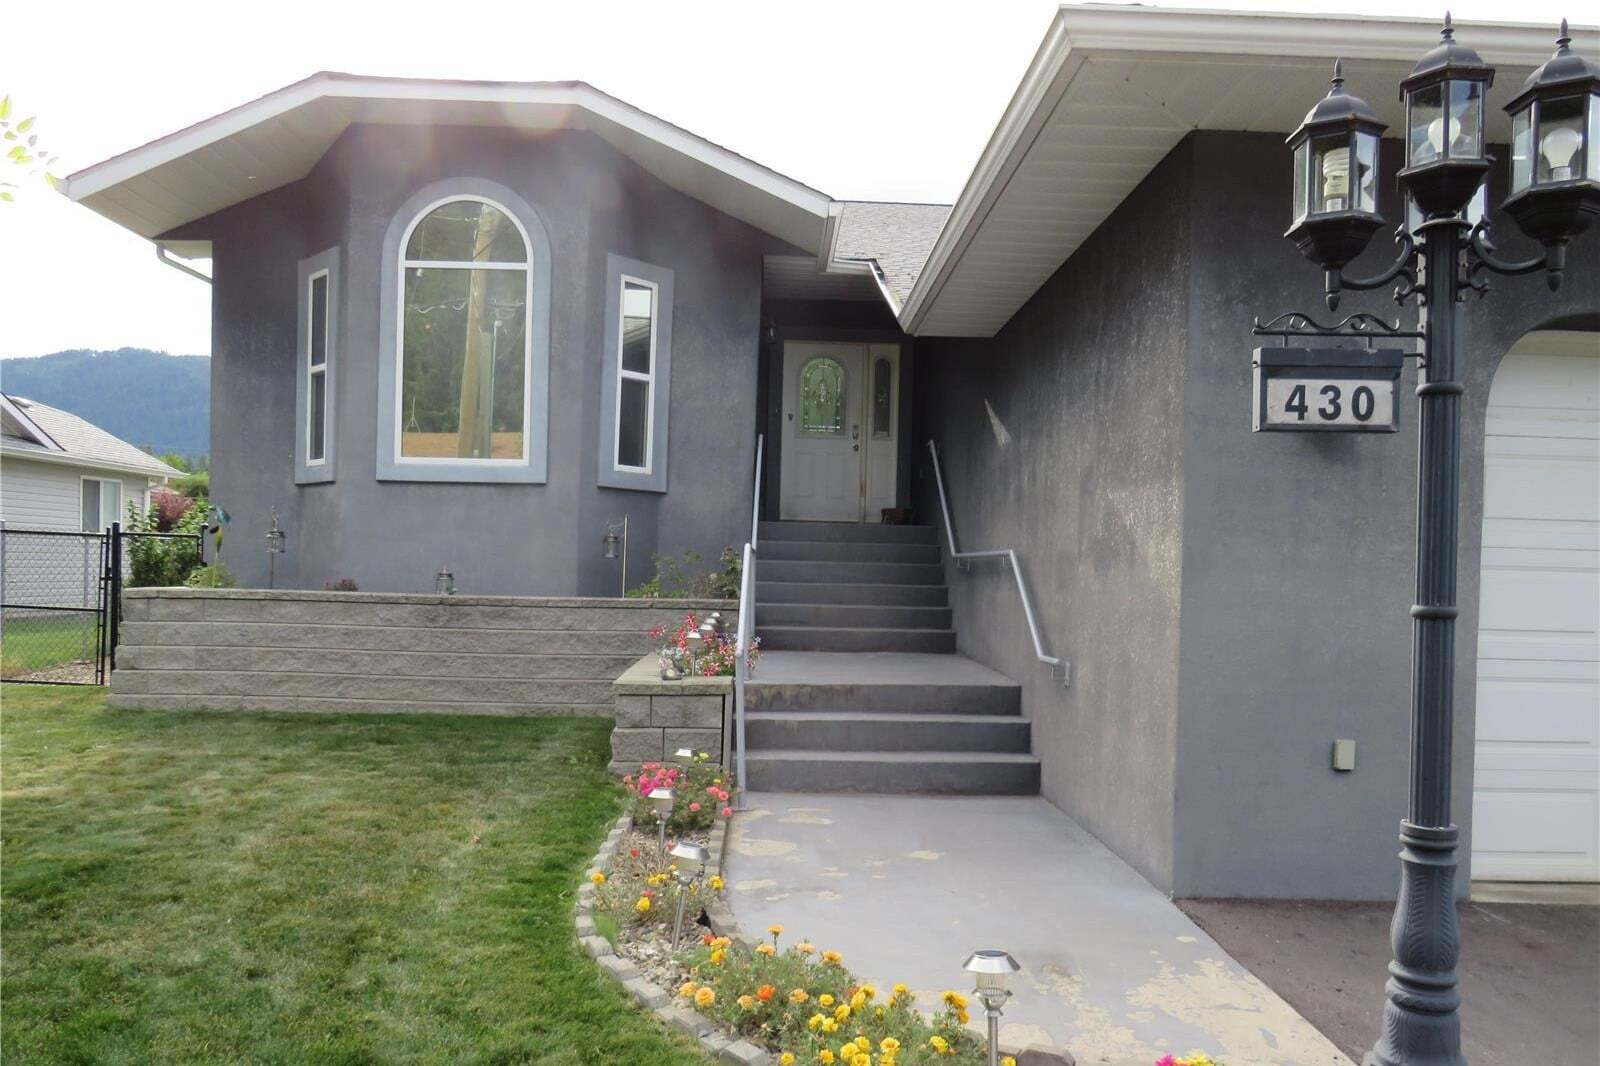 House for sale at 430 Dogwood Ave Sicamous British Columbia - MLS: 10214114